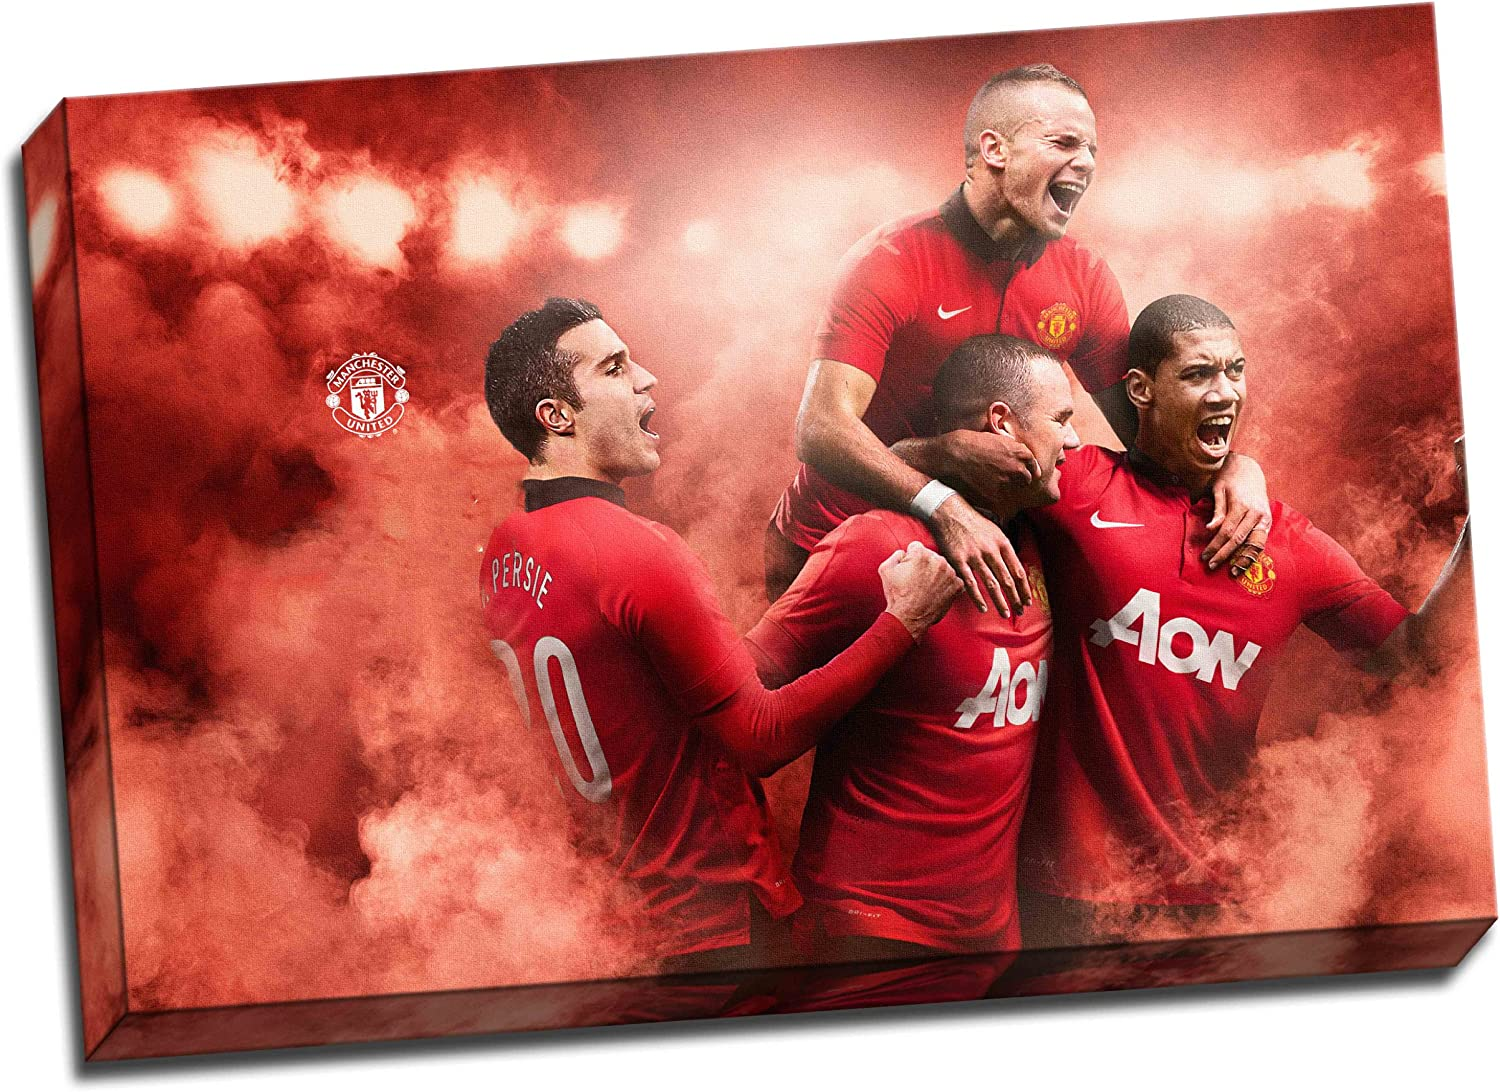 Amazon Com Panther Print Manchester United Canvas Art Print Poster 30 X 20 Inches 76 2 X 50 8 Cm Posters Prints